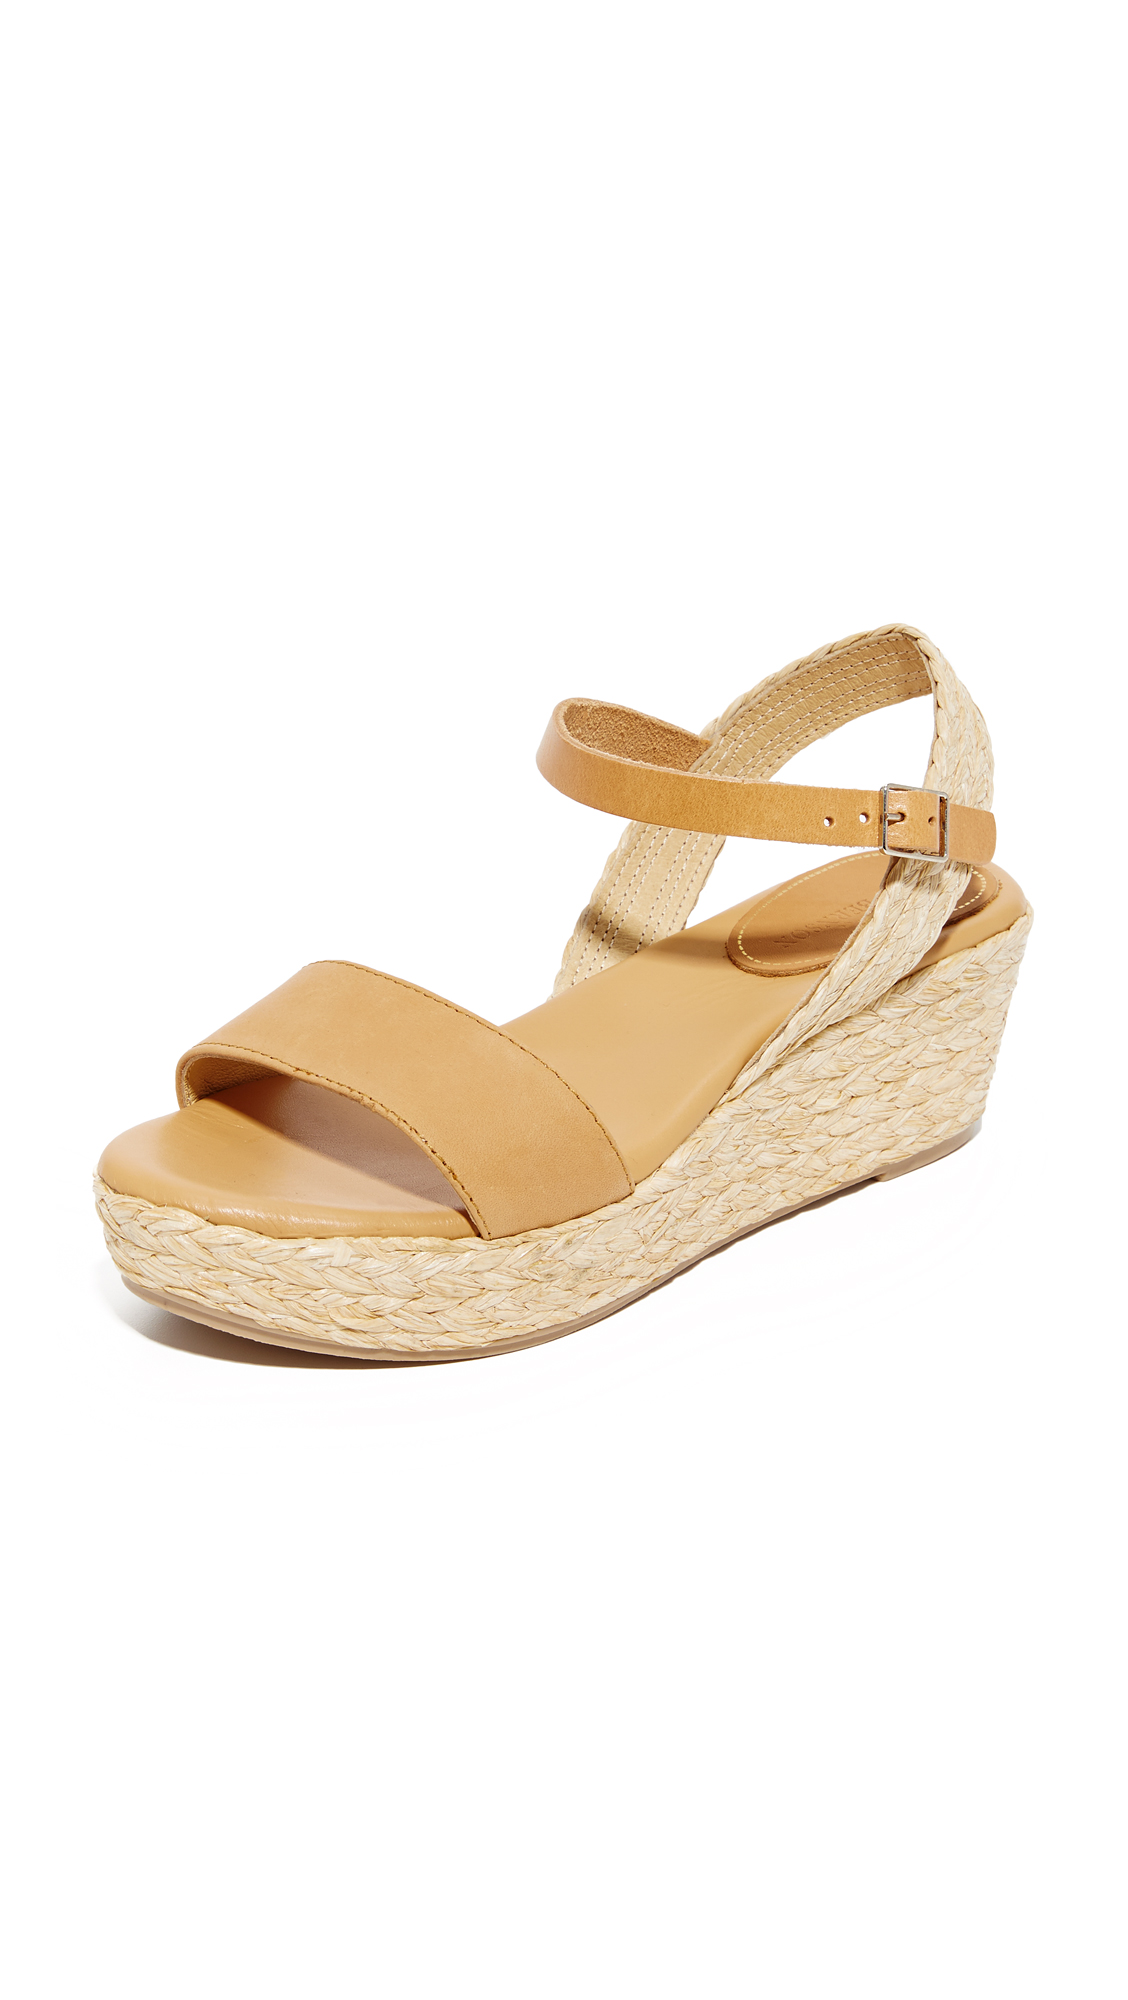 Matt Bernson Neptune Flatforms - Wheat